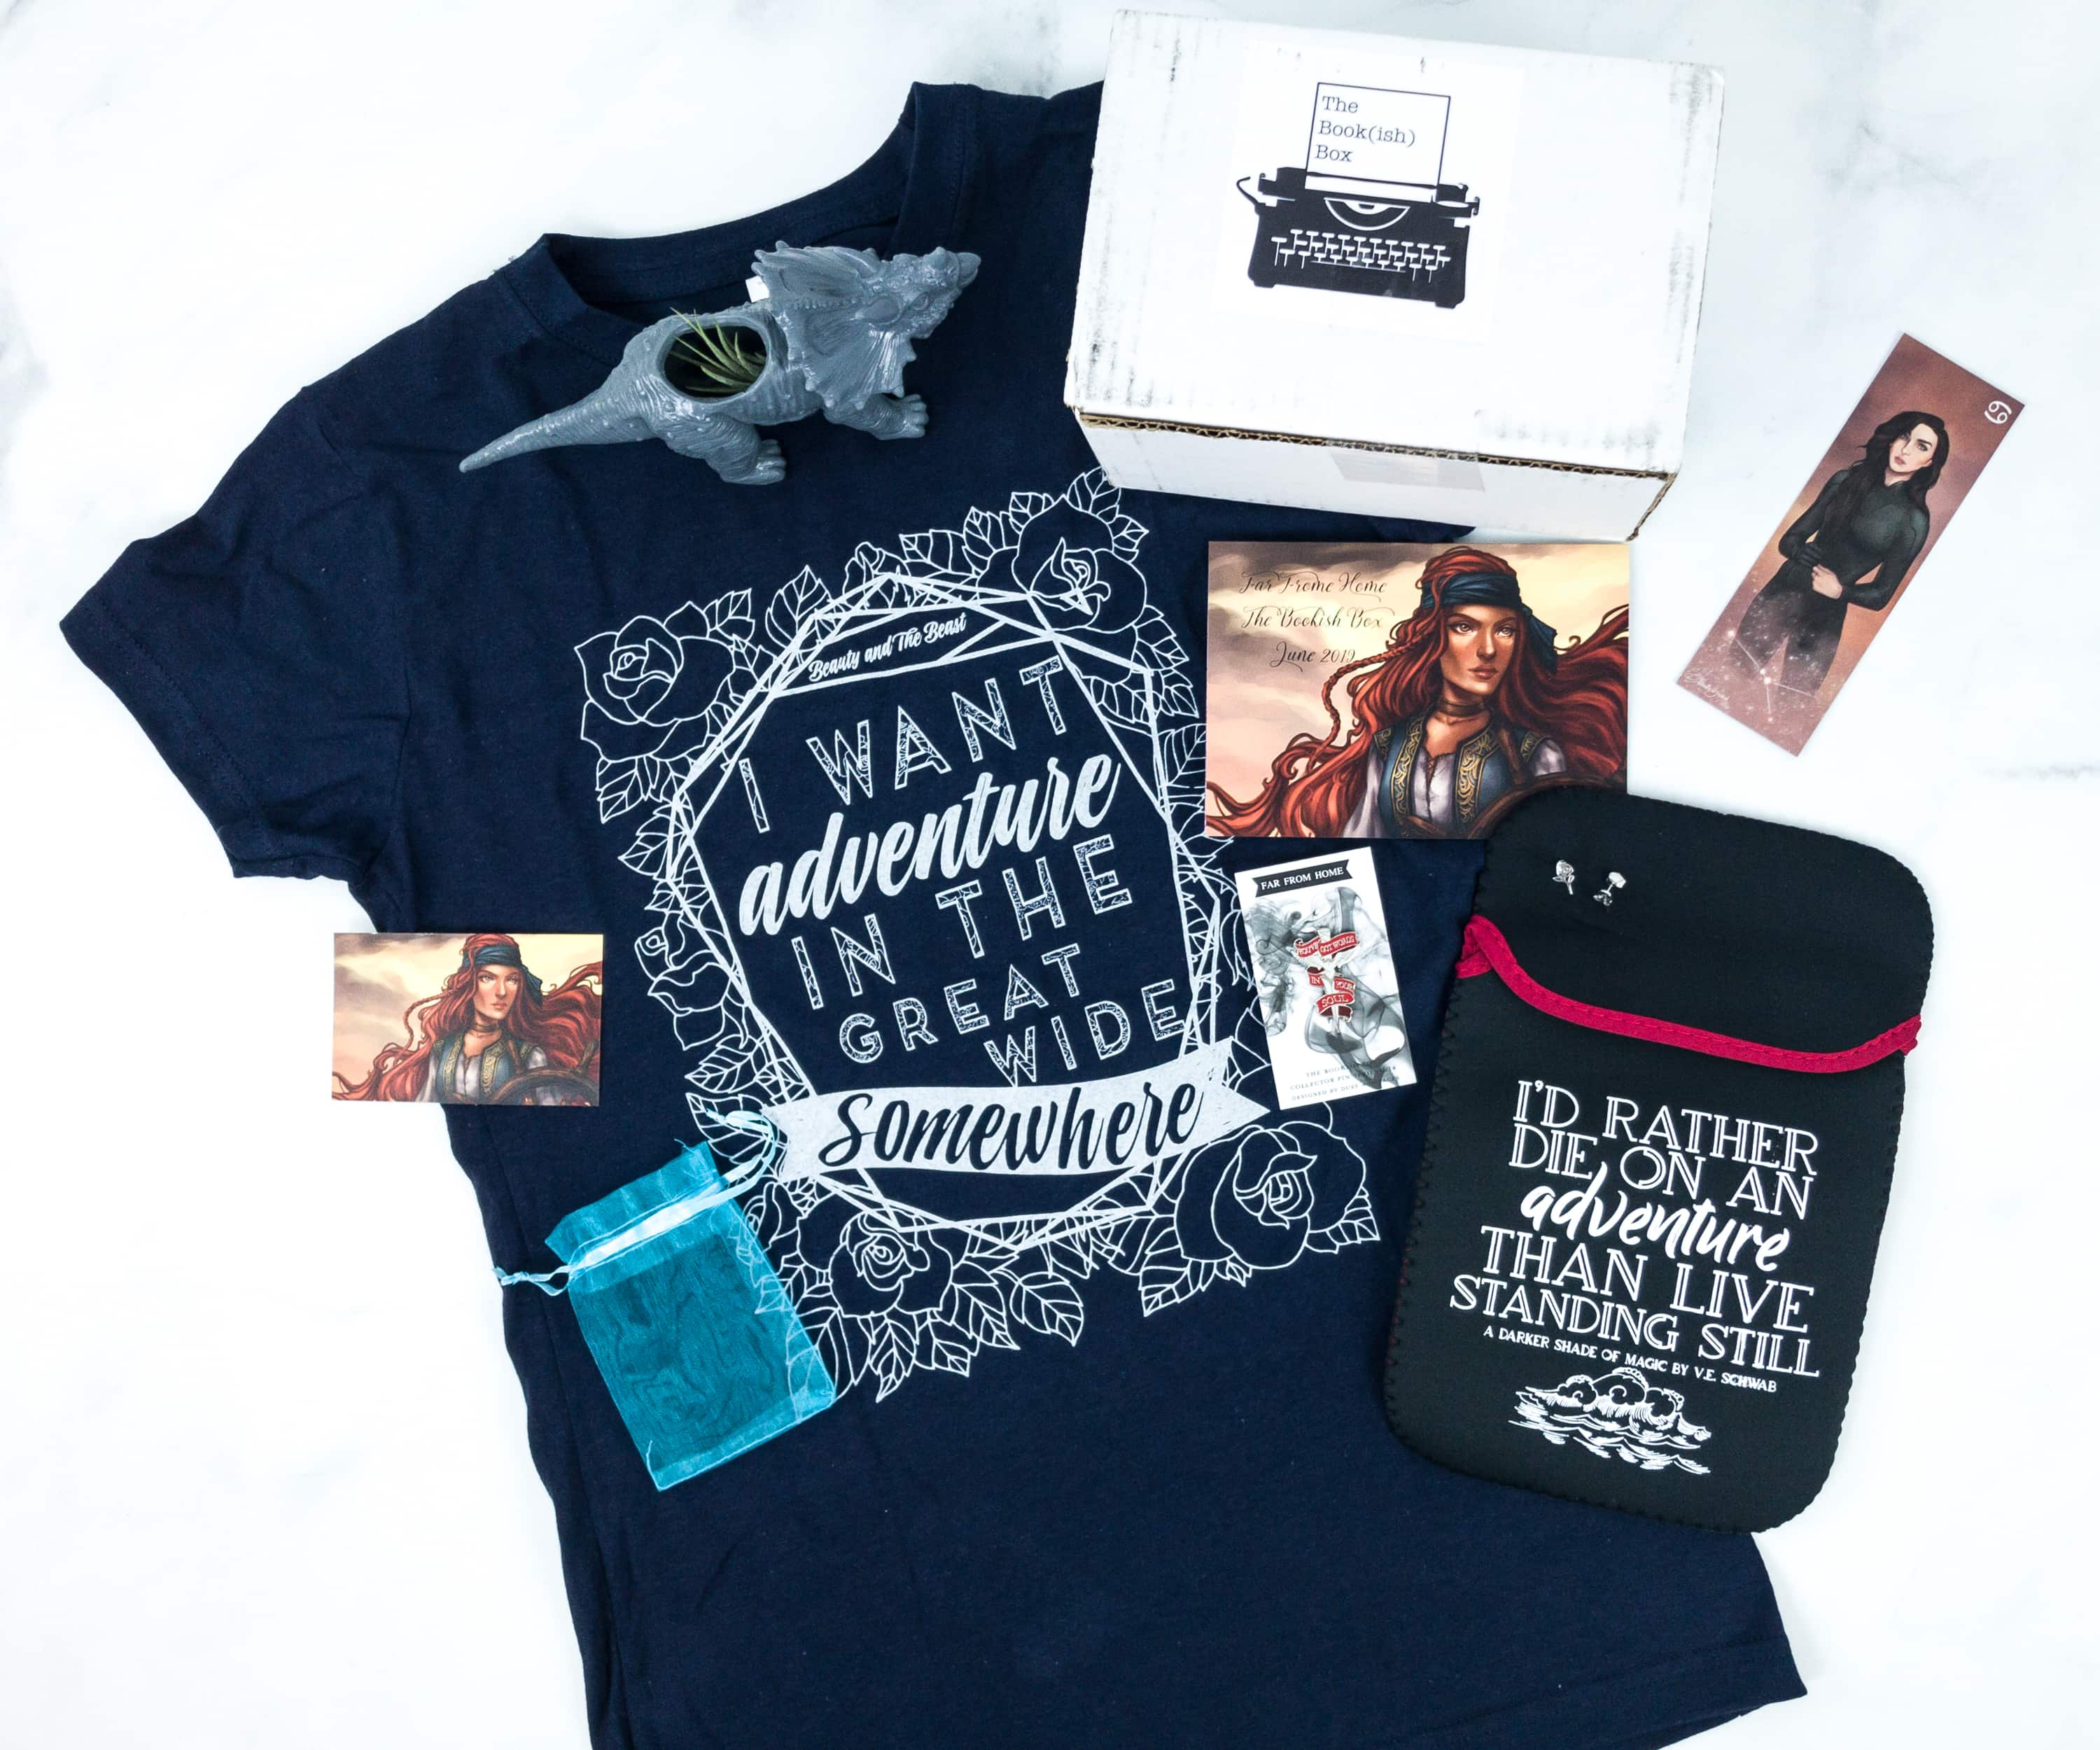 The Bookish Box June 2019 Subscription Box Review + Coupon